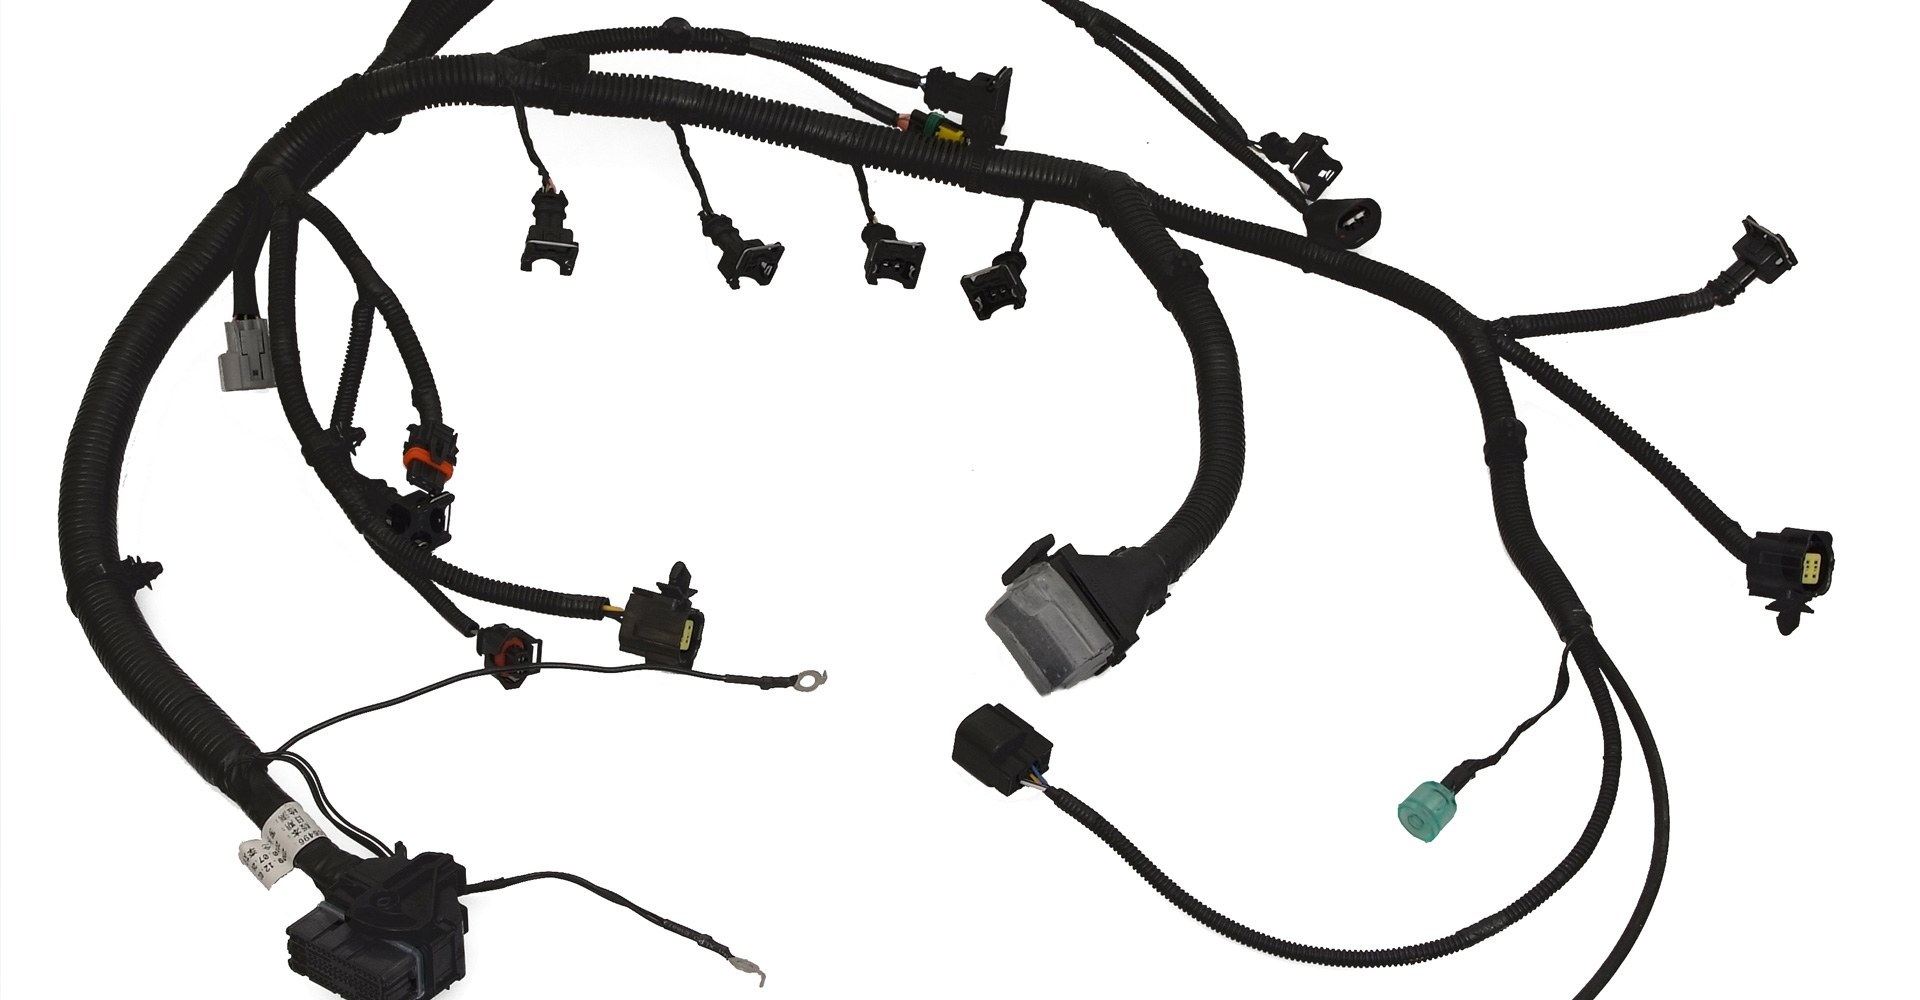 Automotive wire harness products on wiring harness clips